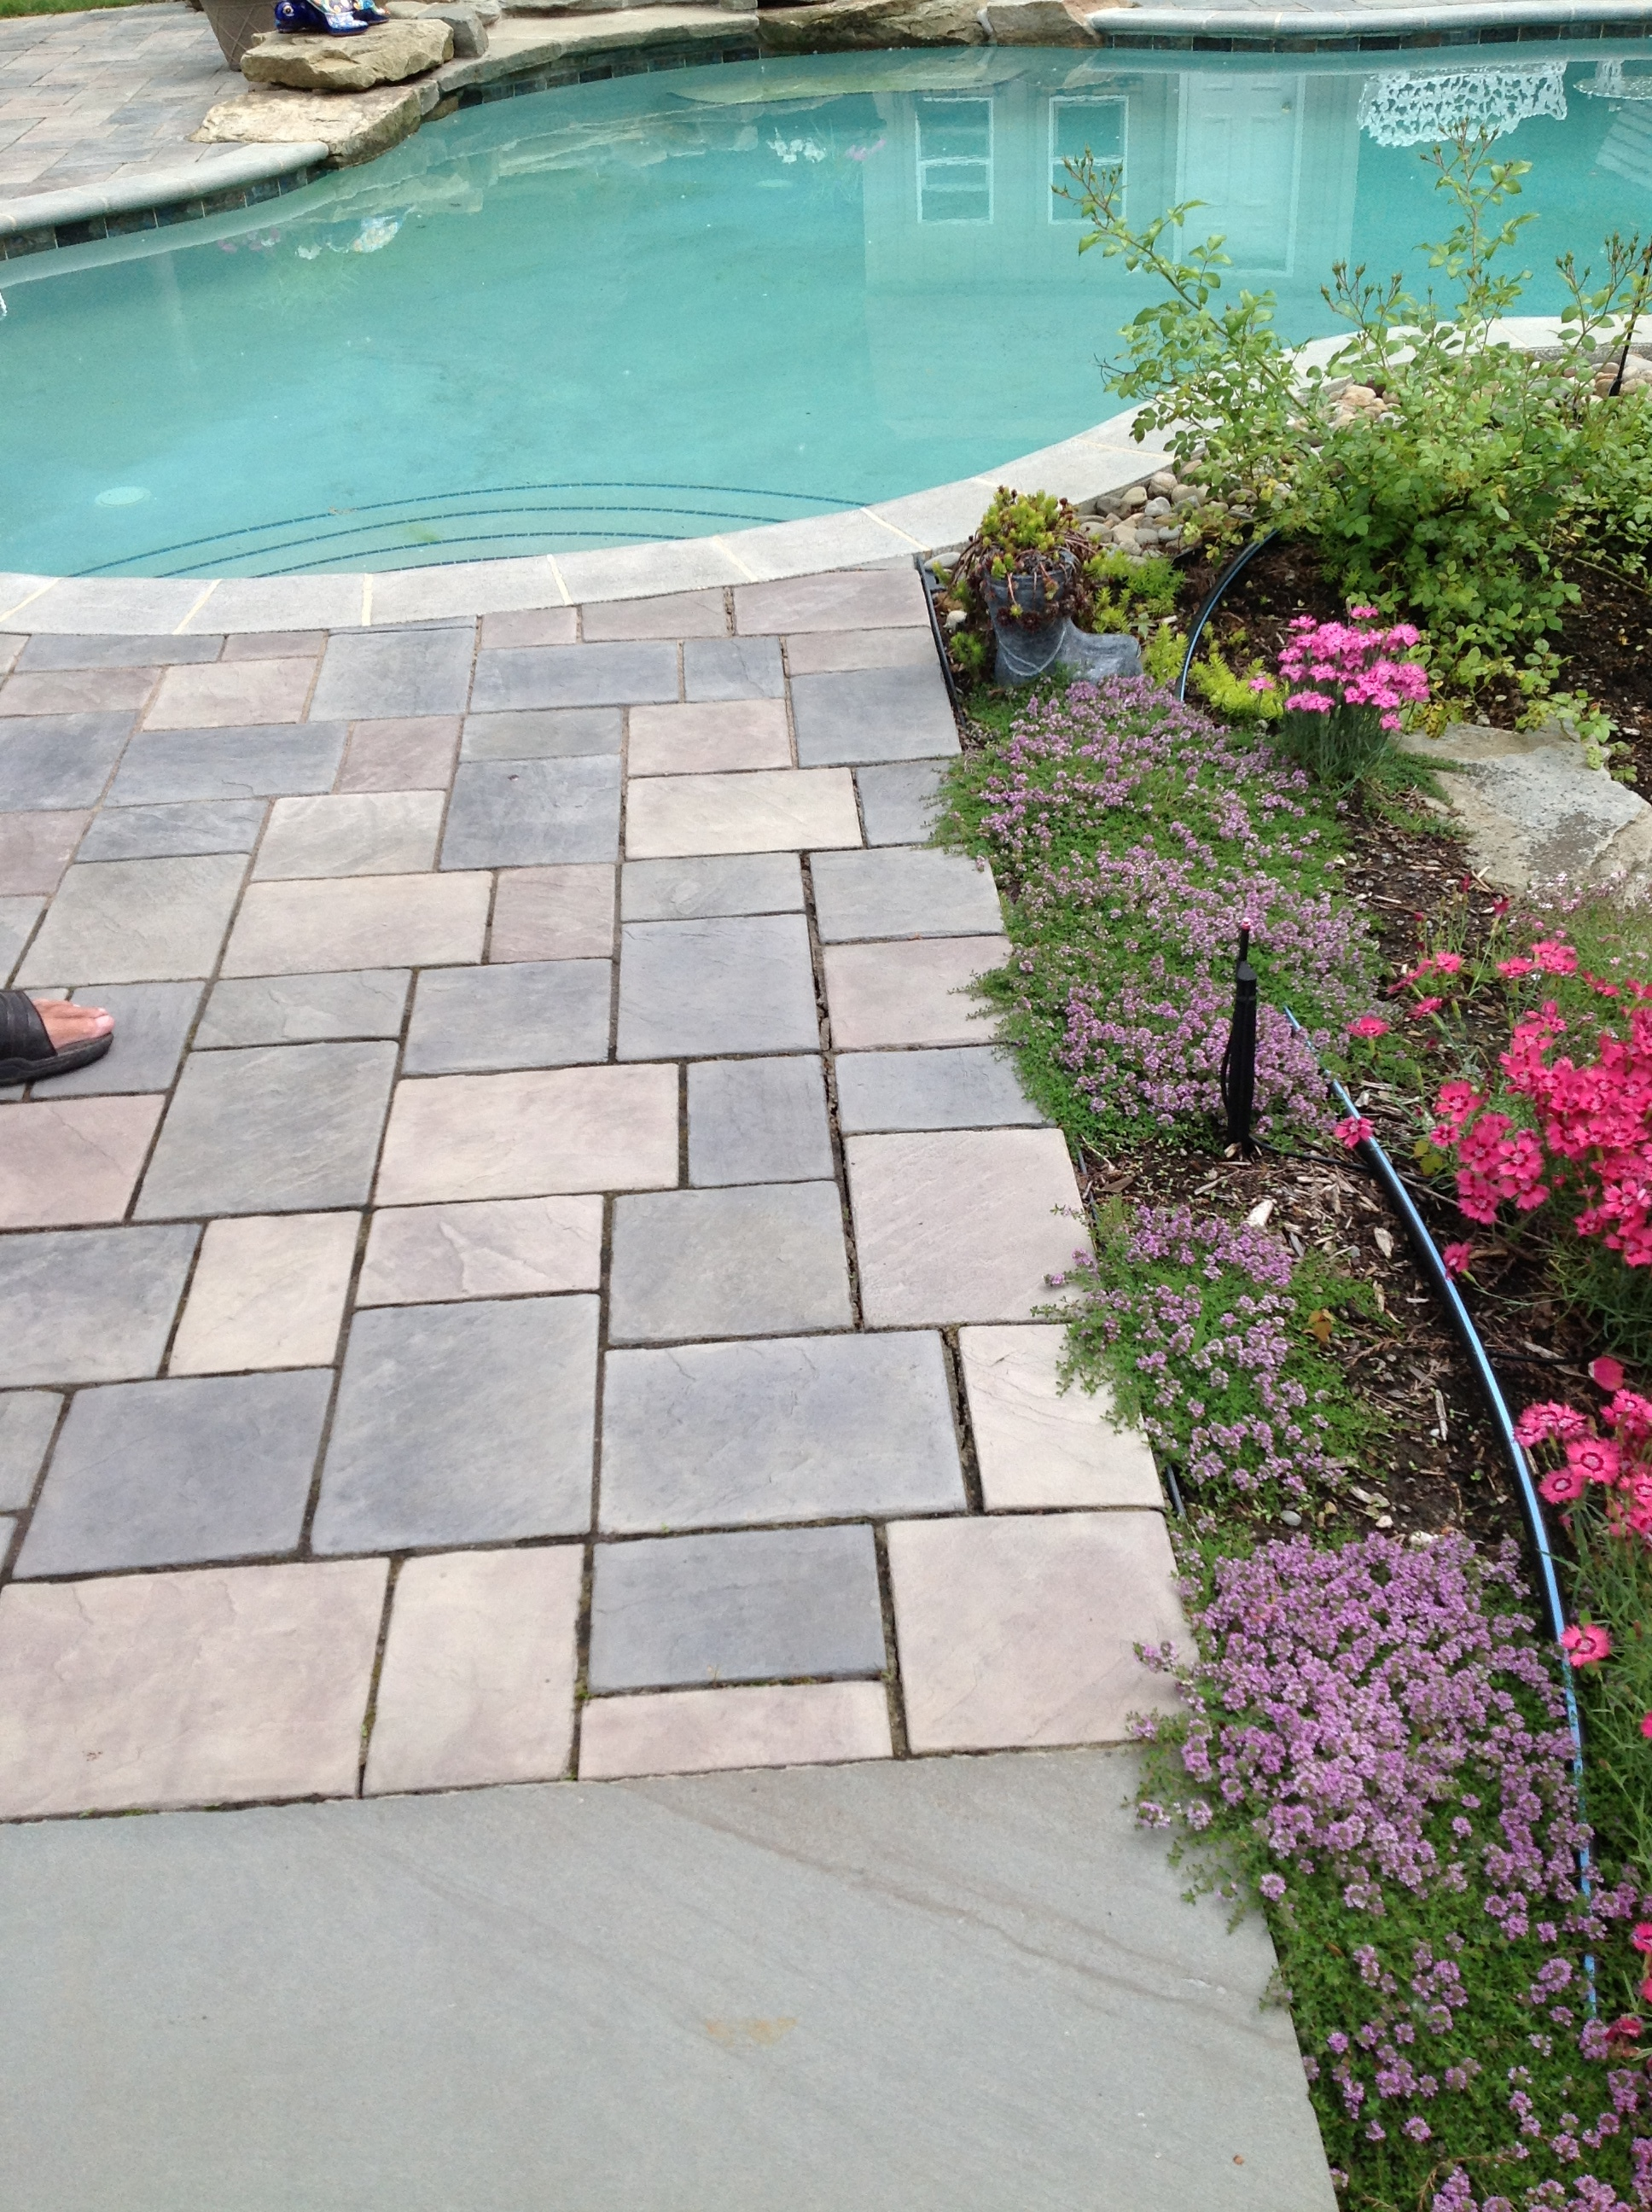 Unilock patio pavers in Hunting Valley, OH